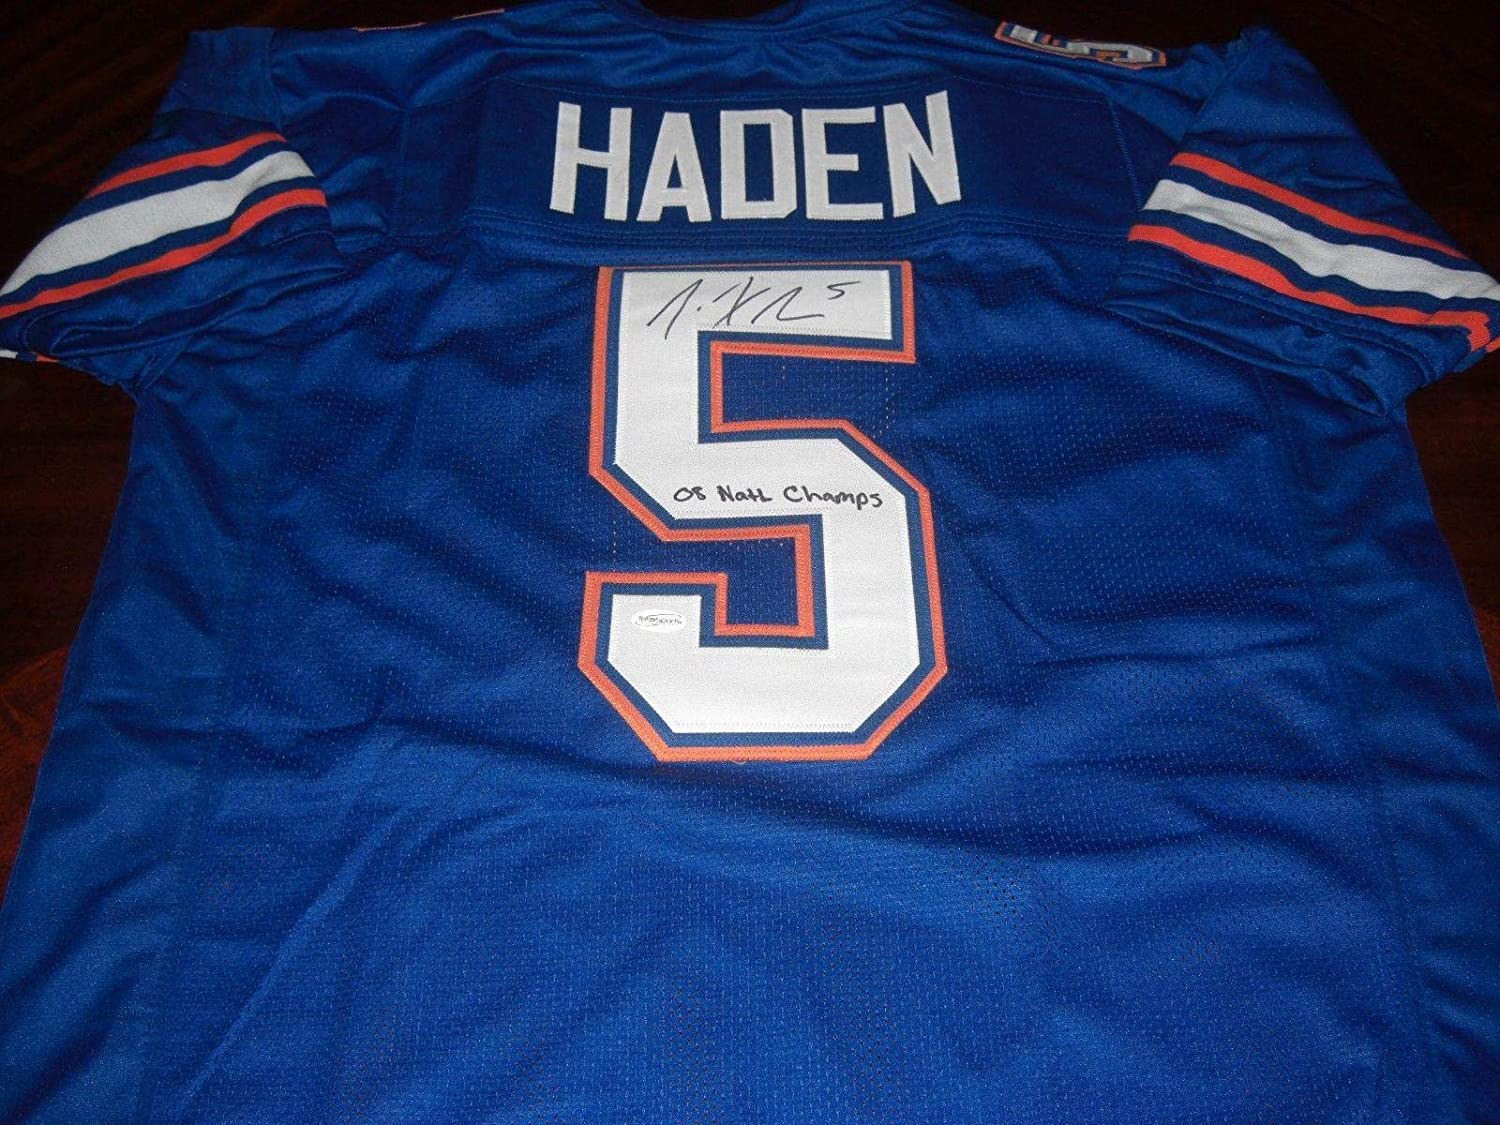 sports shoes 4d7bb ccead Joe Haden Signed Jersey - 08 National Champs Tse holo ...